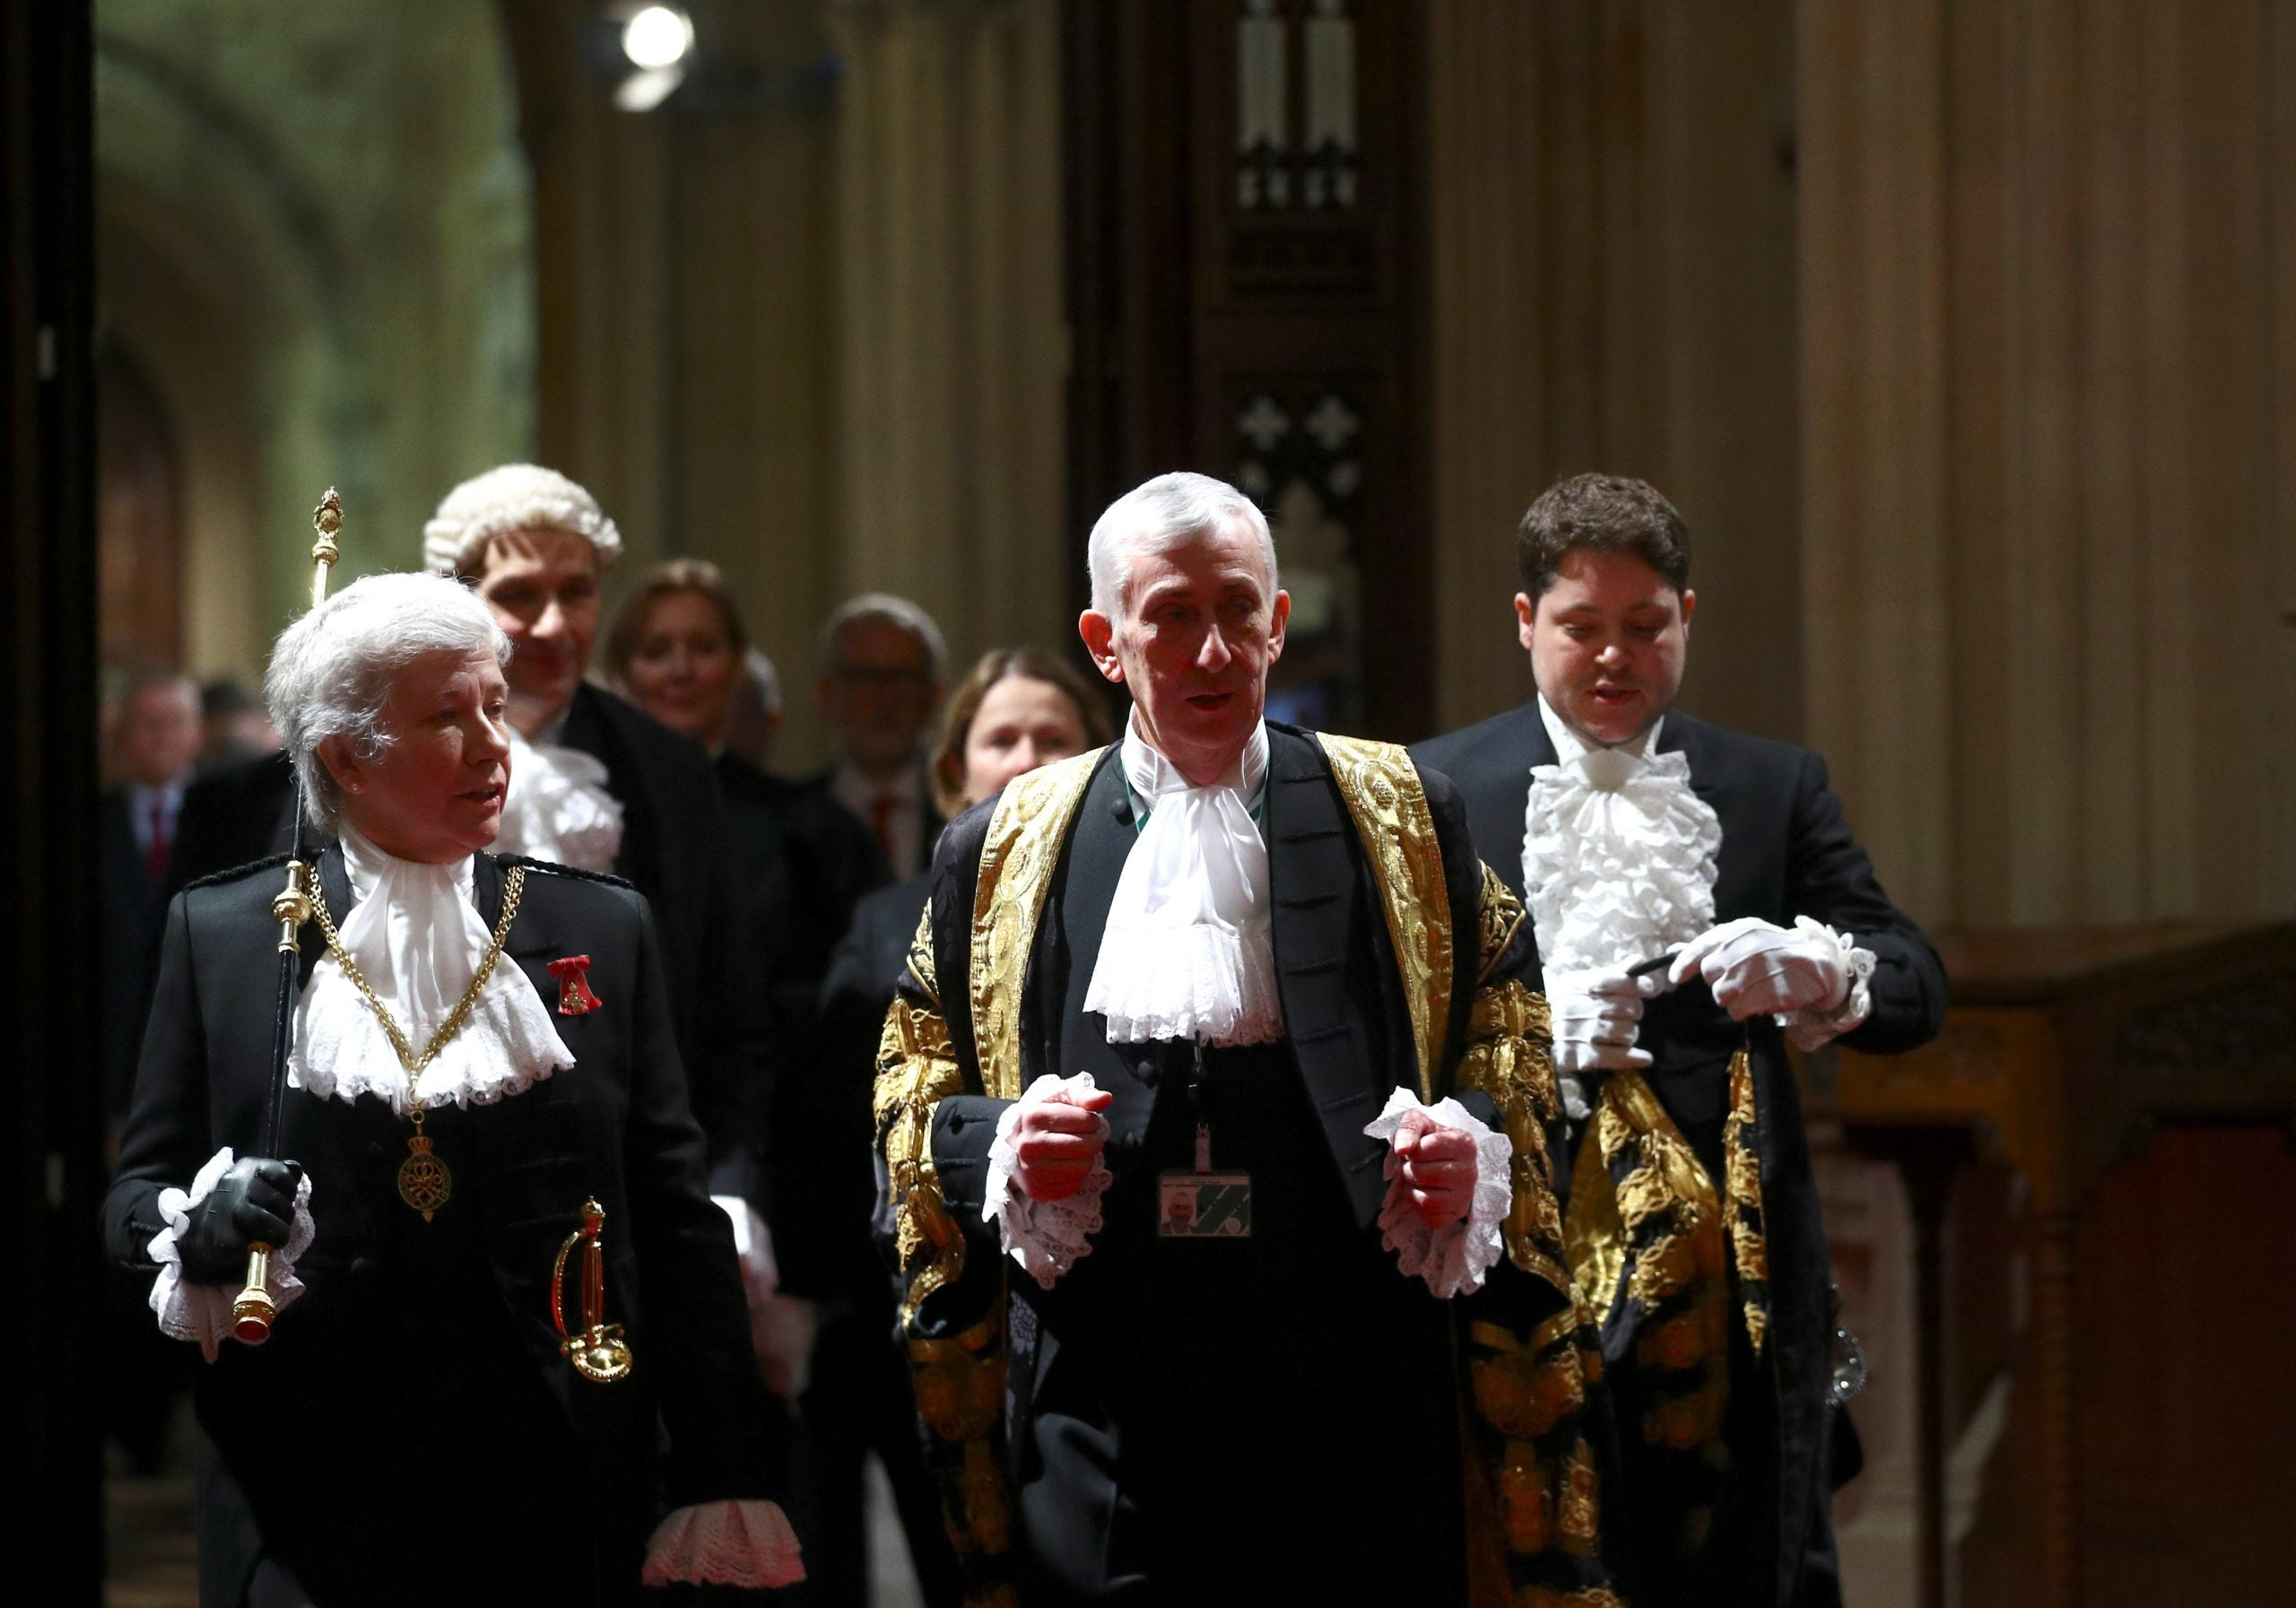 Commons Confidential: Lindsay Hoyle's most solemn duty